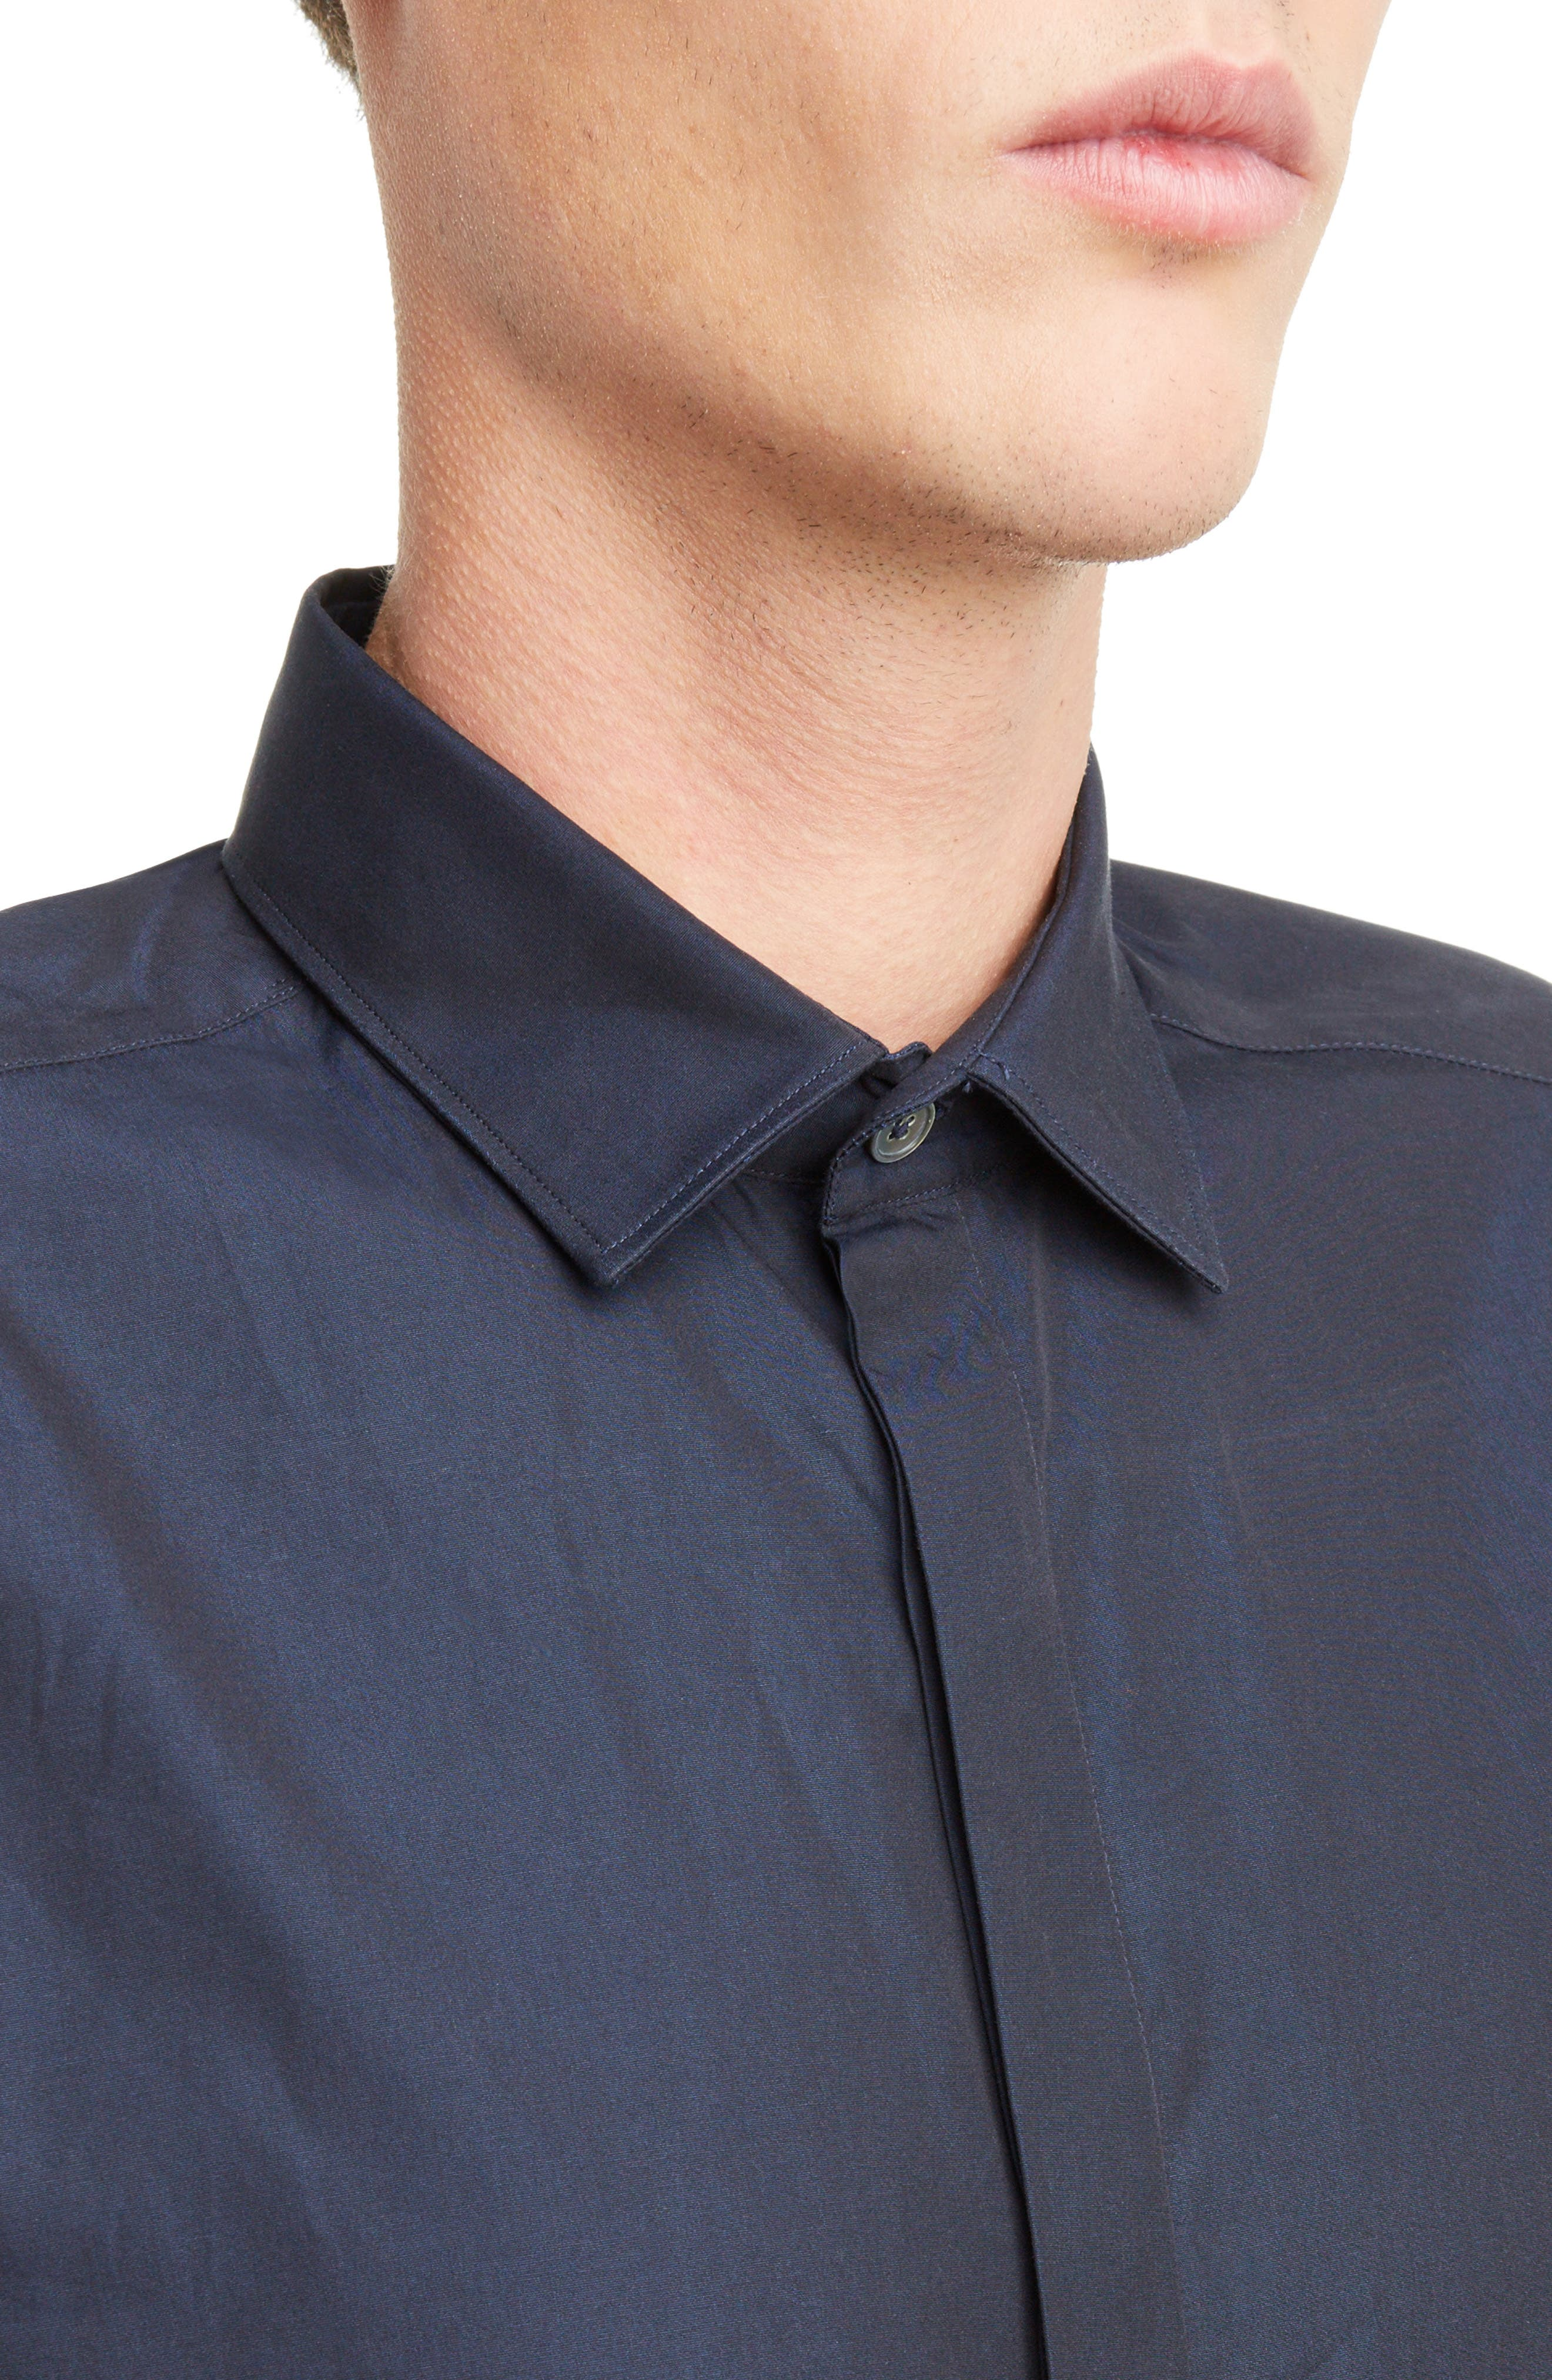 Covered Placket Sport Shirt,                             Alternate thumbnail 5, color,                             NAVY